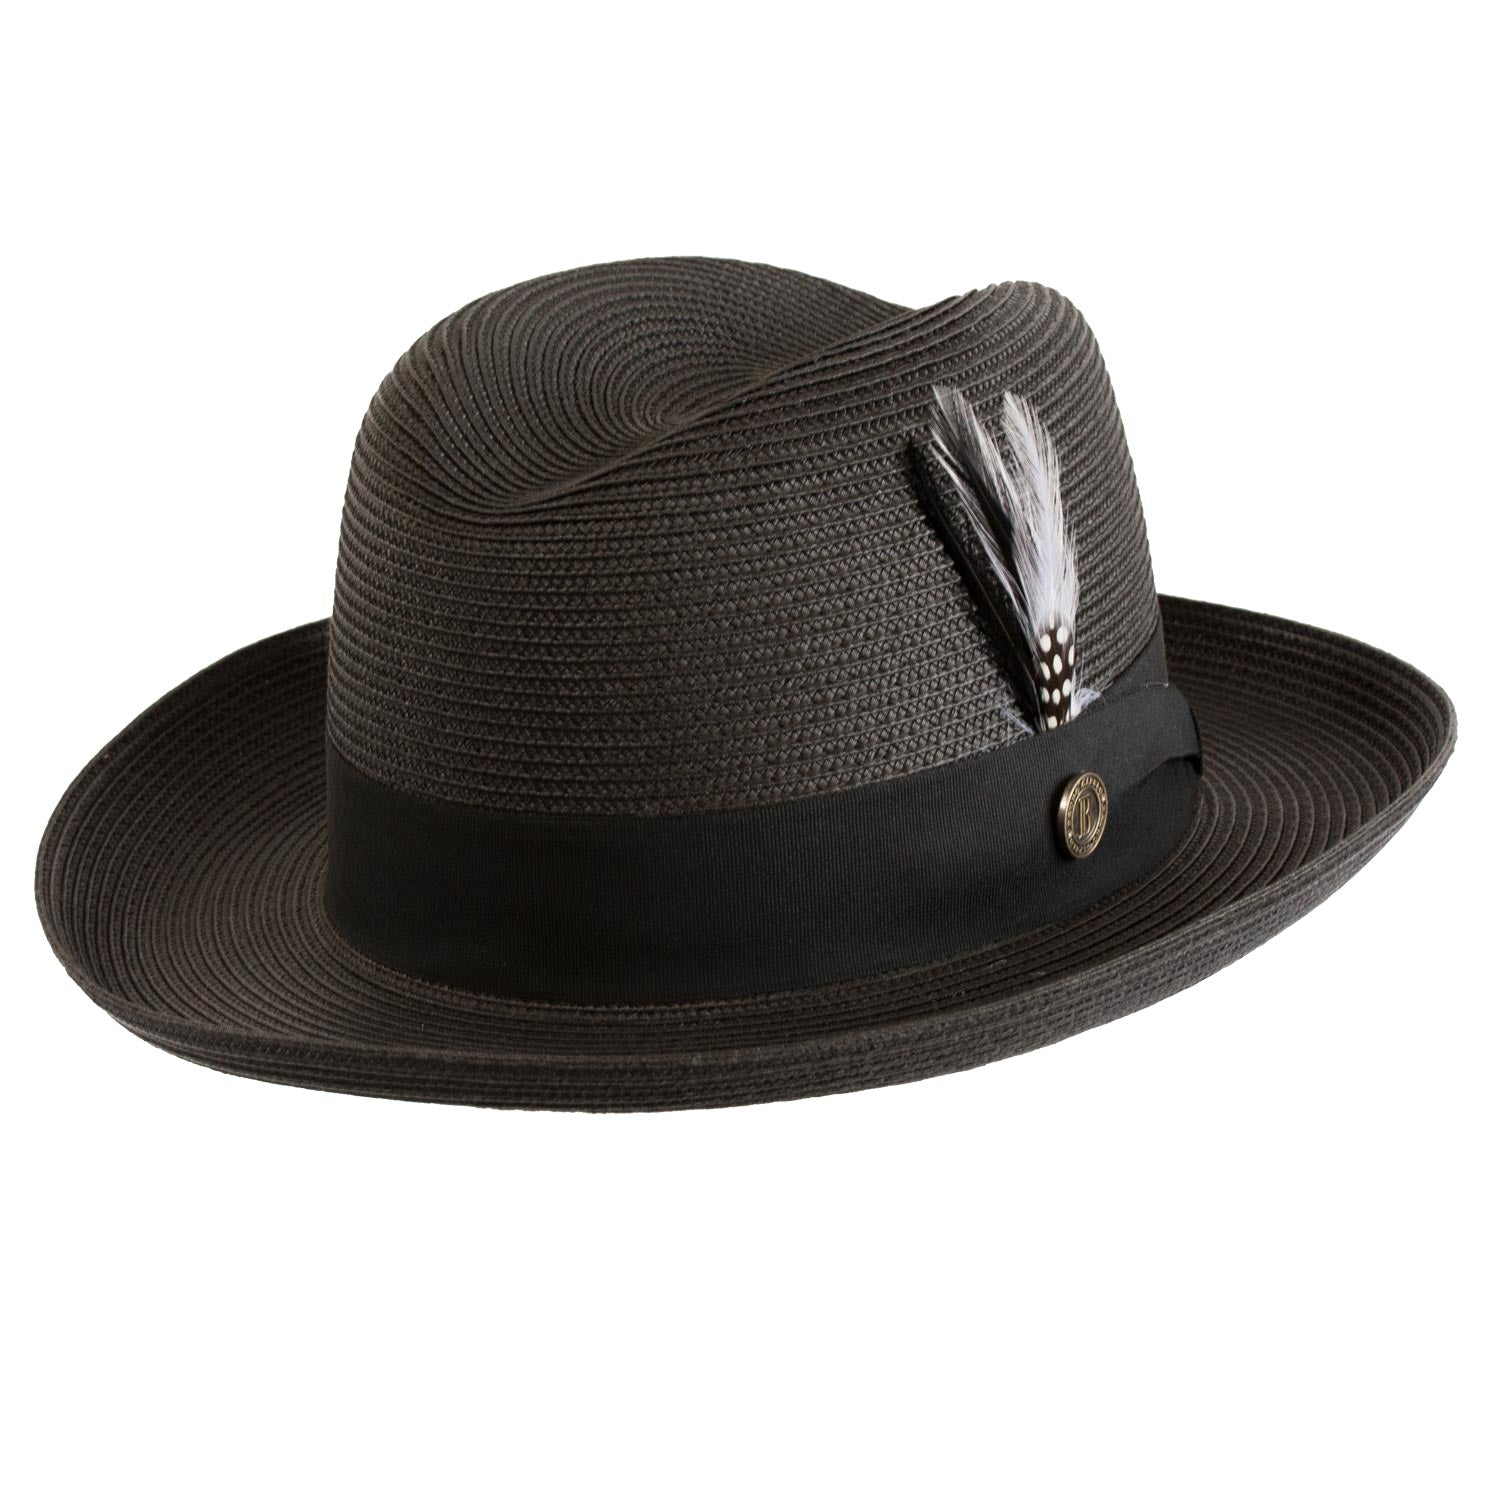 f62b6340a69f1 Bruno Capelo Straw Godfather – Levine Hat Co.